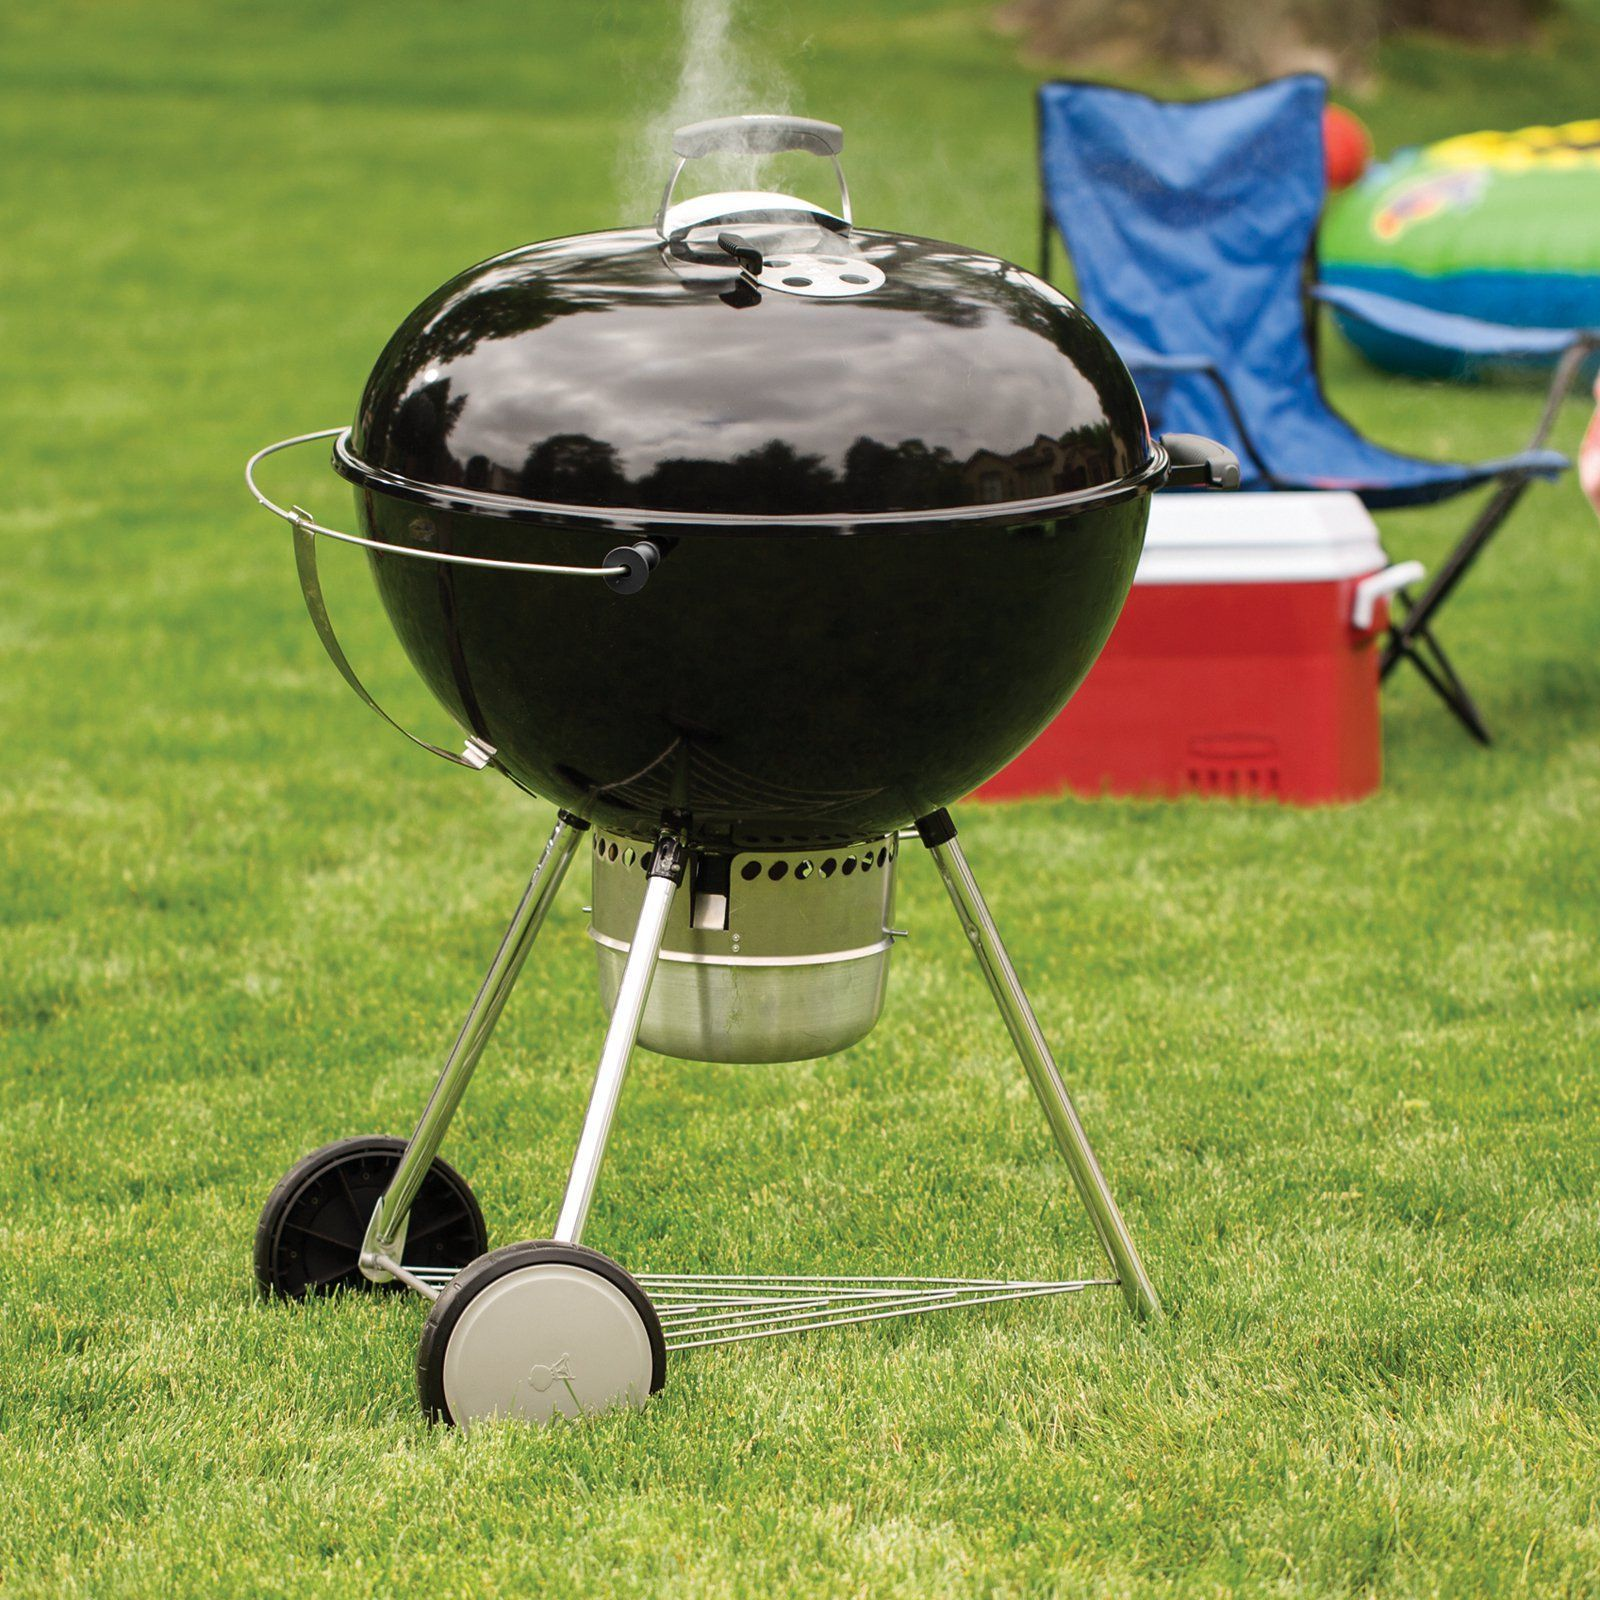 Original Kettle Premium 26 in Charcoal Grill Black